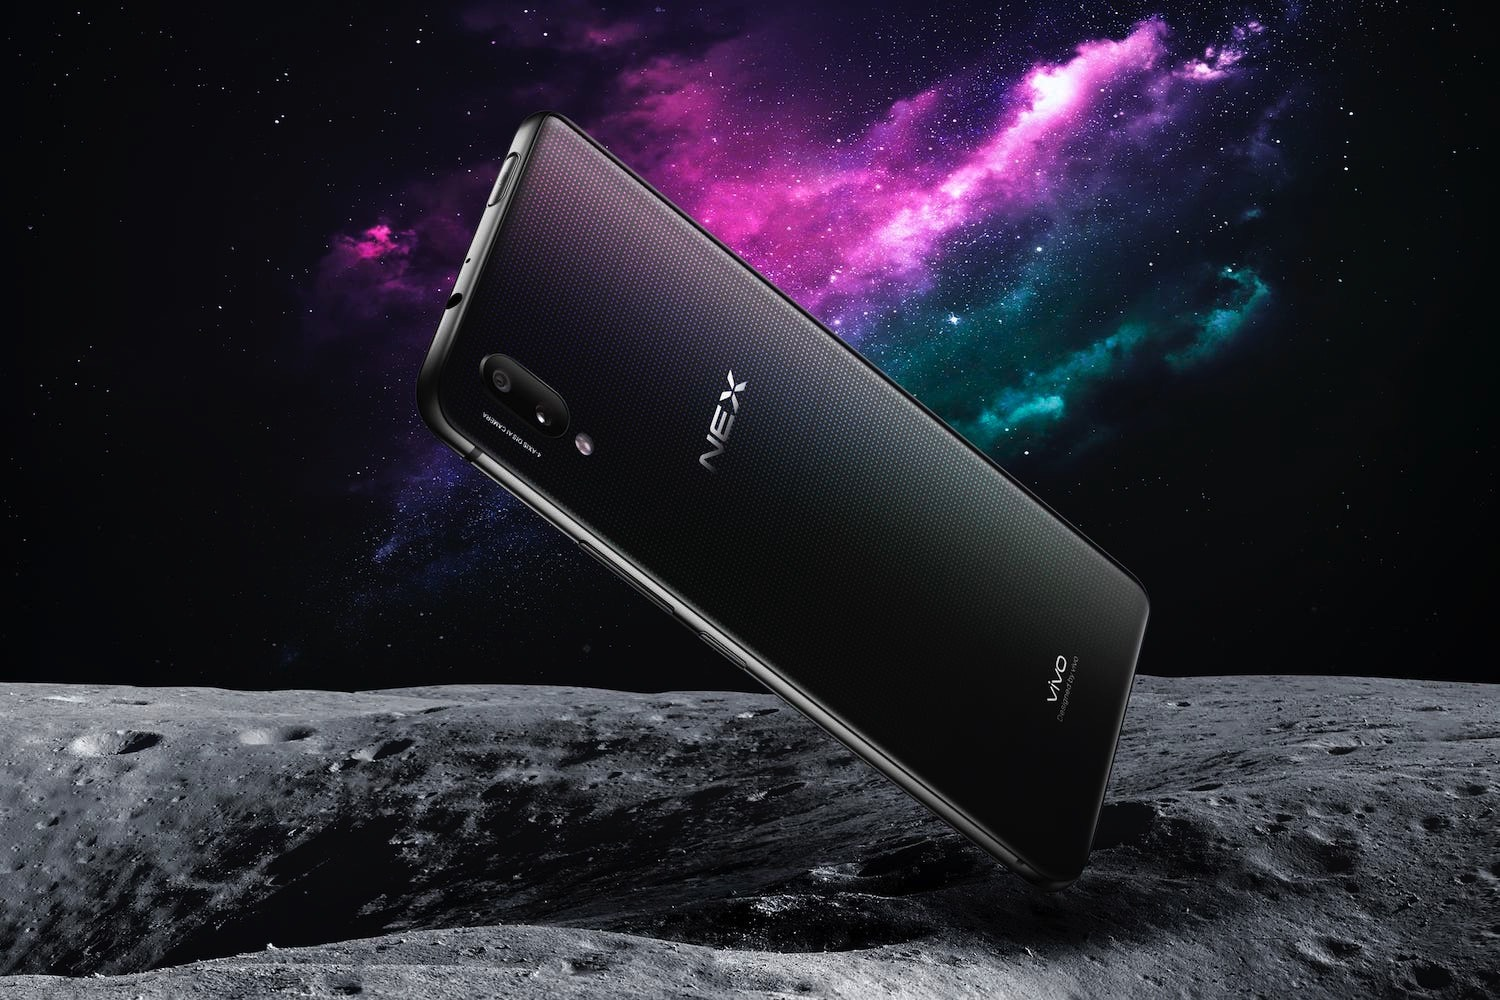 Vivo NEX with bezel-less design & pop-up camera launched in India at Rs 44,990 10